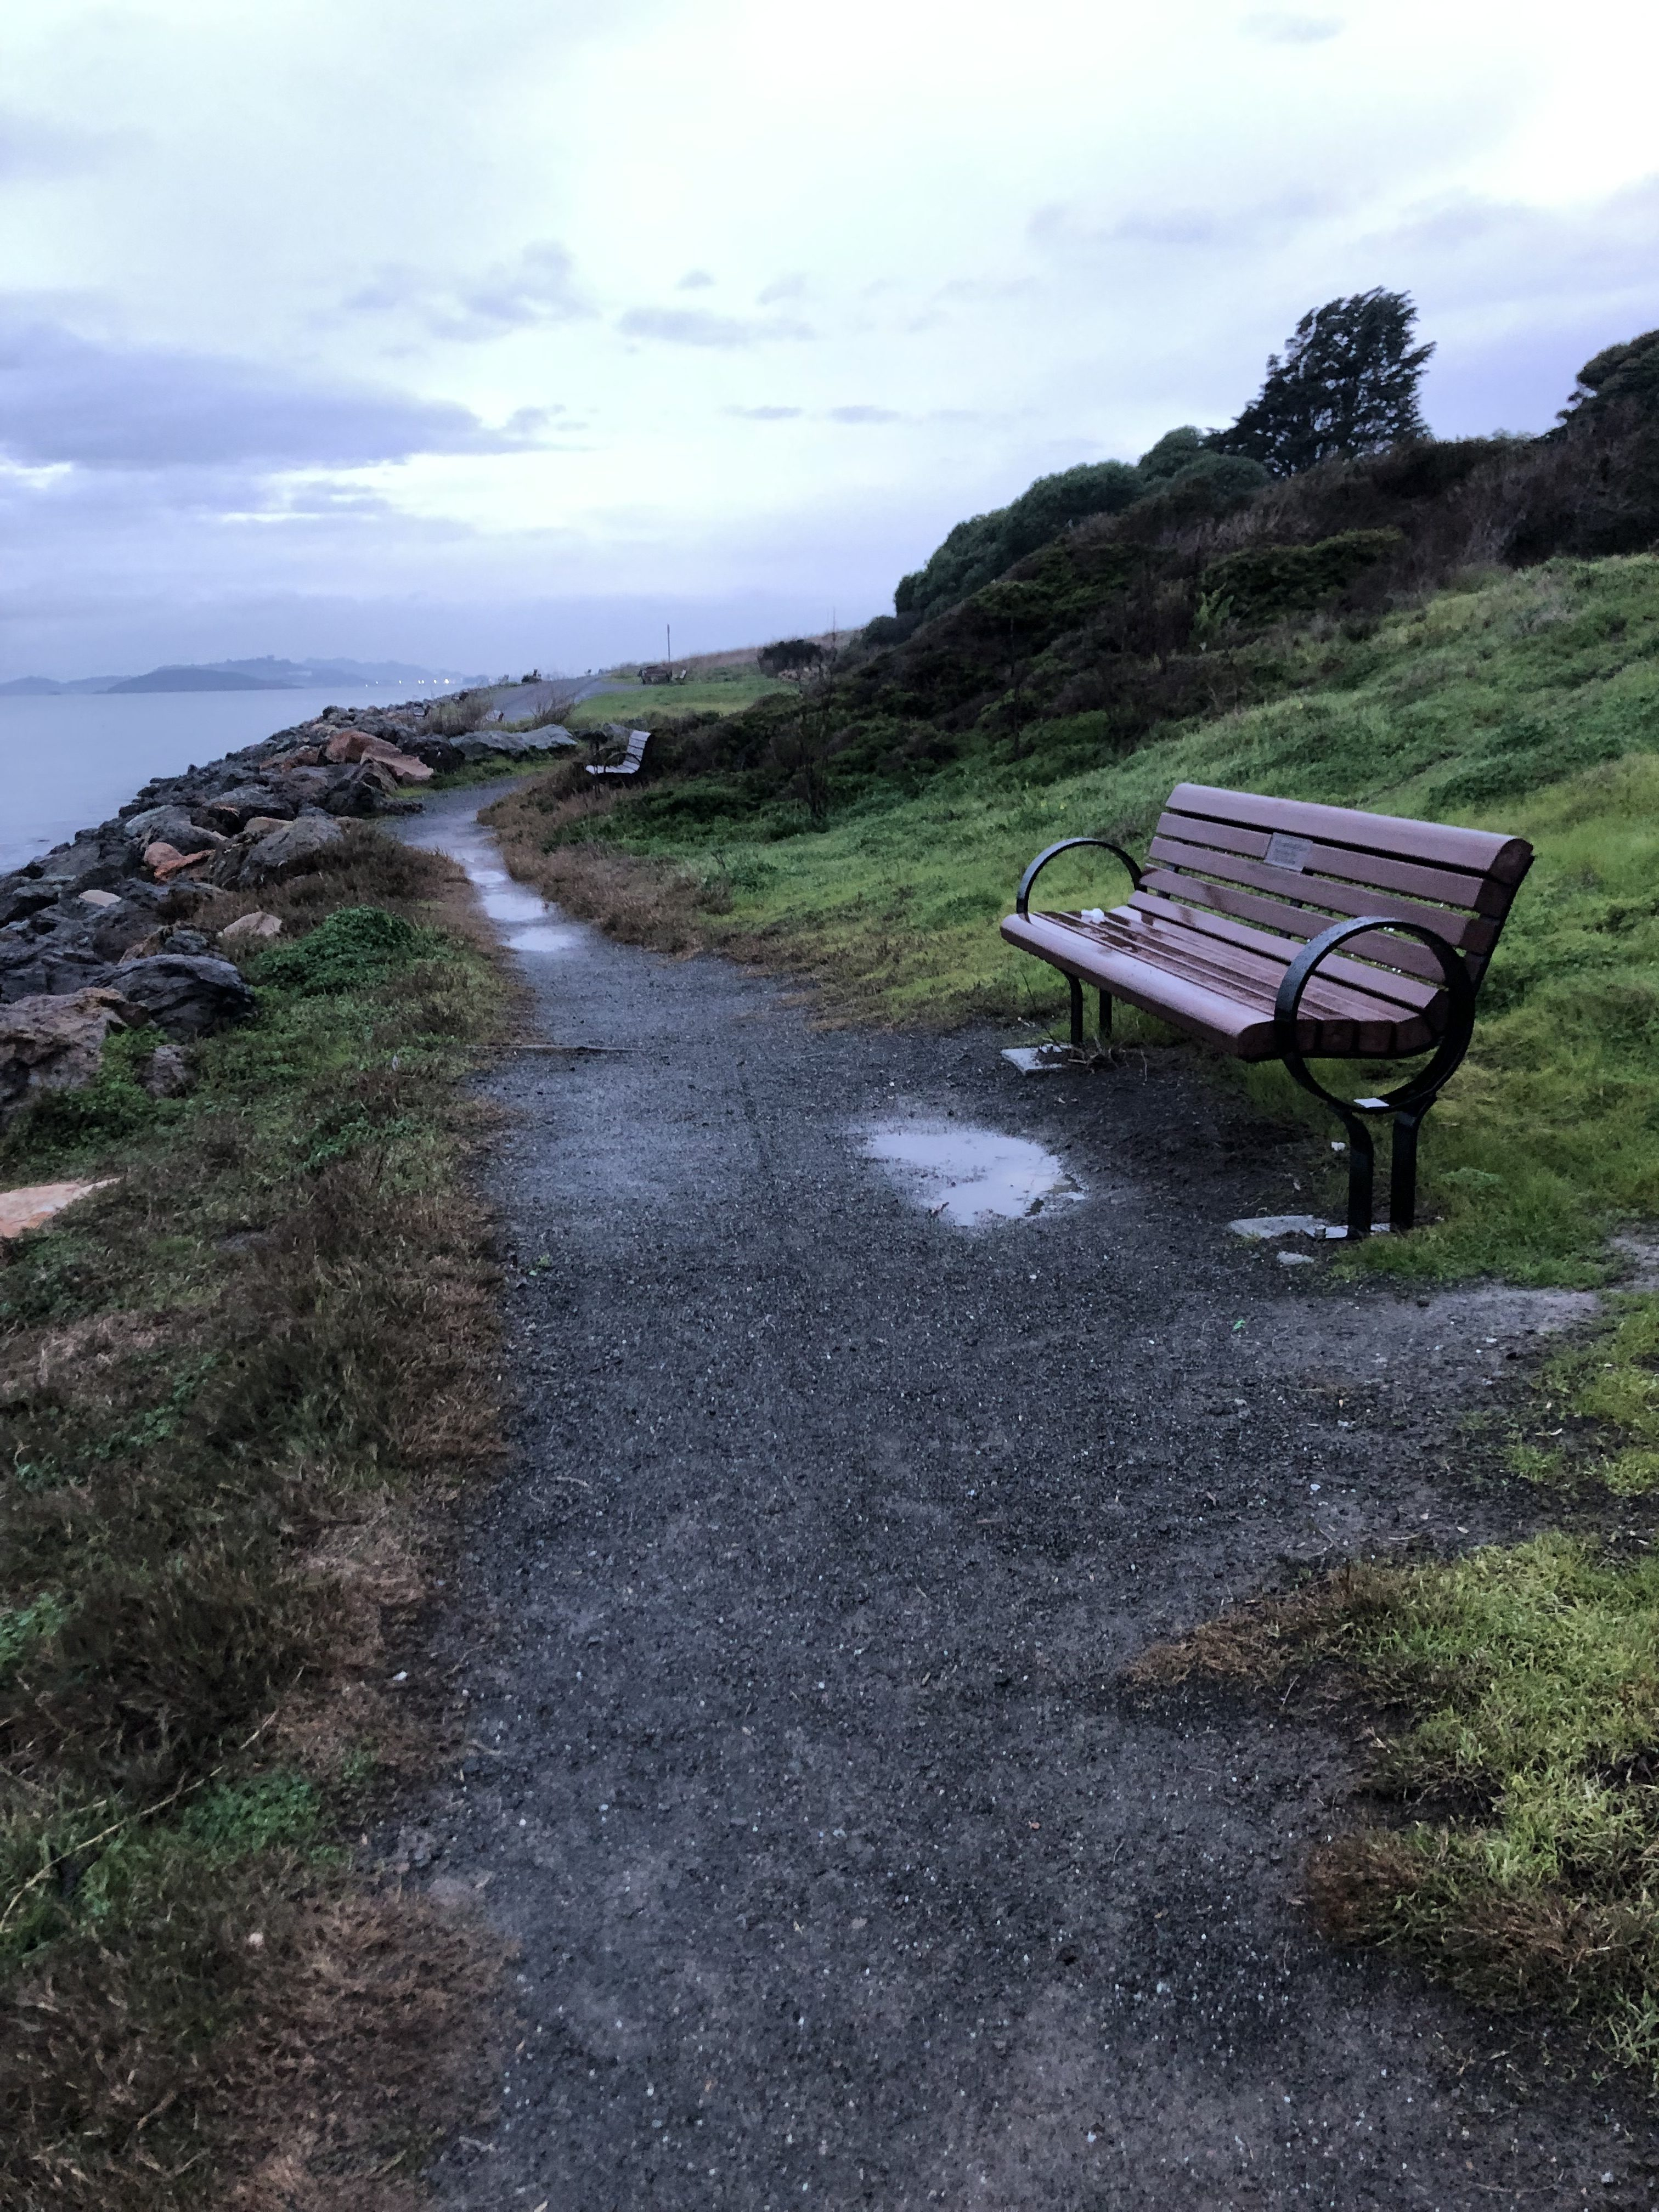 park 1 (gravel path, with bench and grass on one side, and the sea on the other)